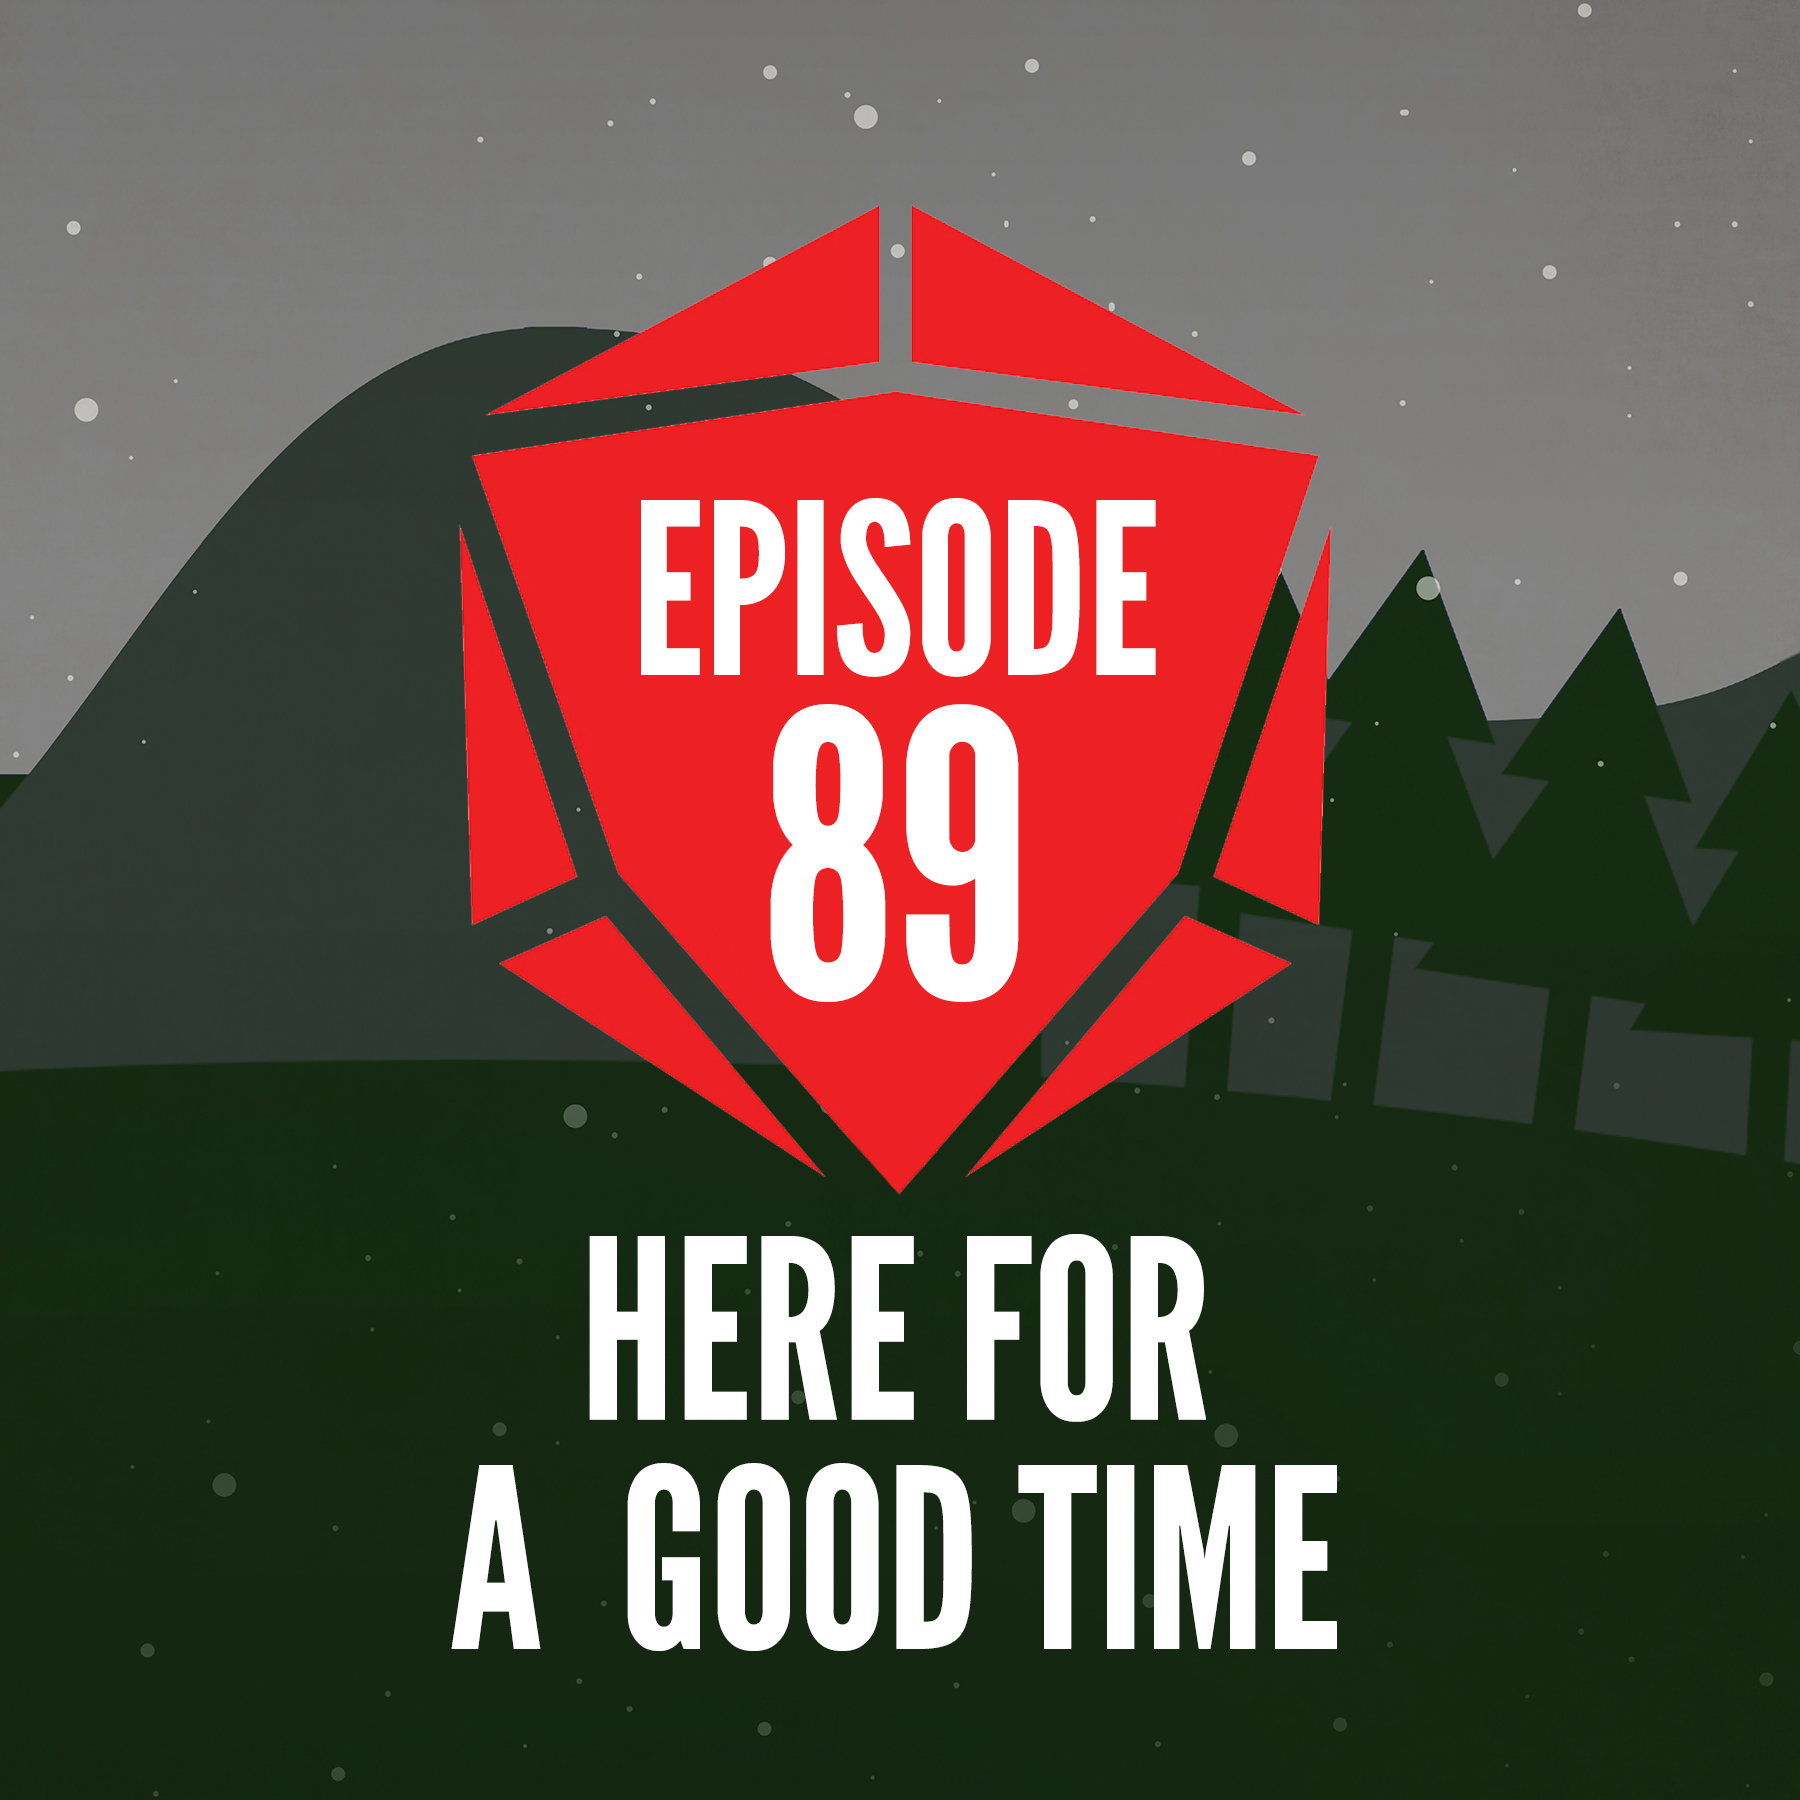 Episode 89: Here For a Good Time